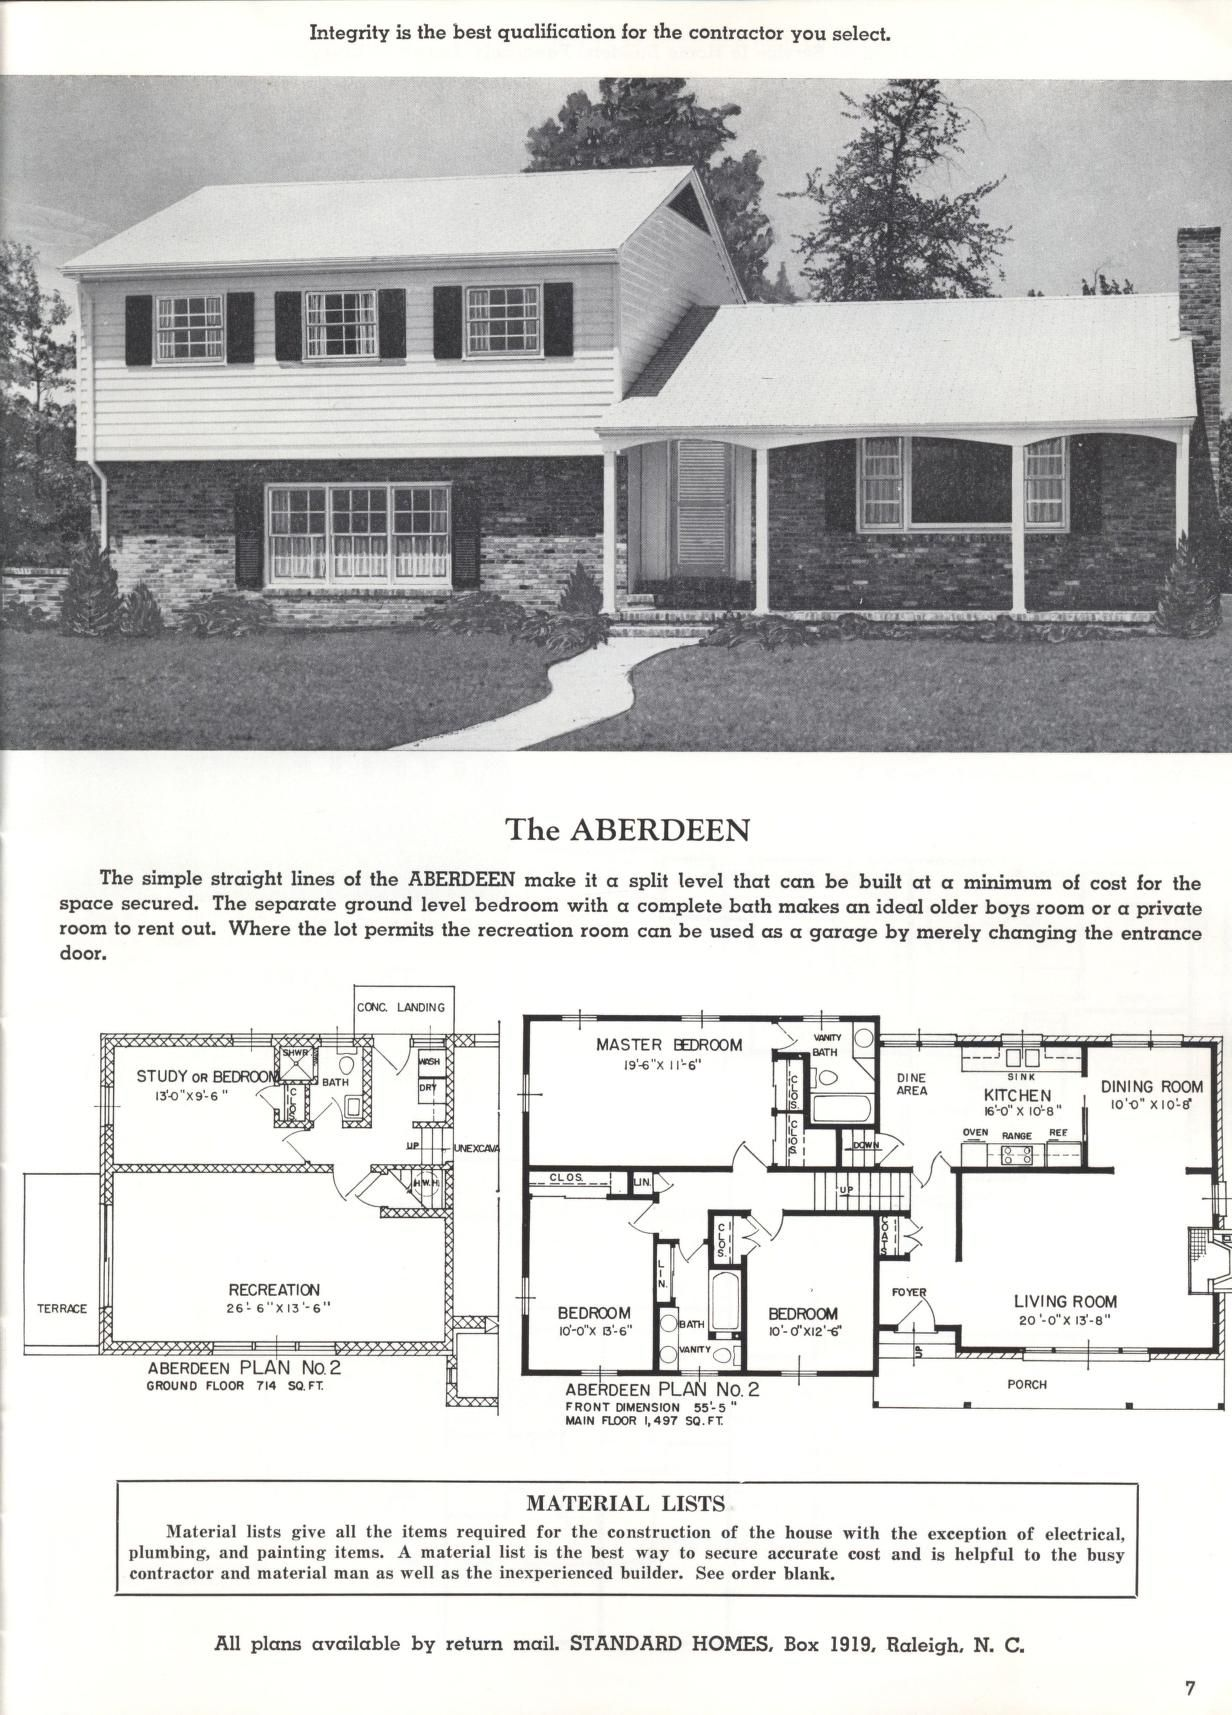 Better Homes At Lower Cost A 46 By Standard Homes Co The Aberdeen Ranch House Plans House Blueprints Maine House